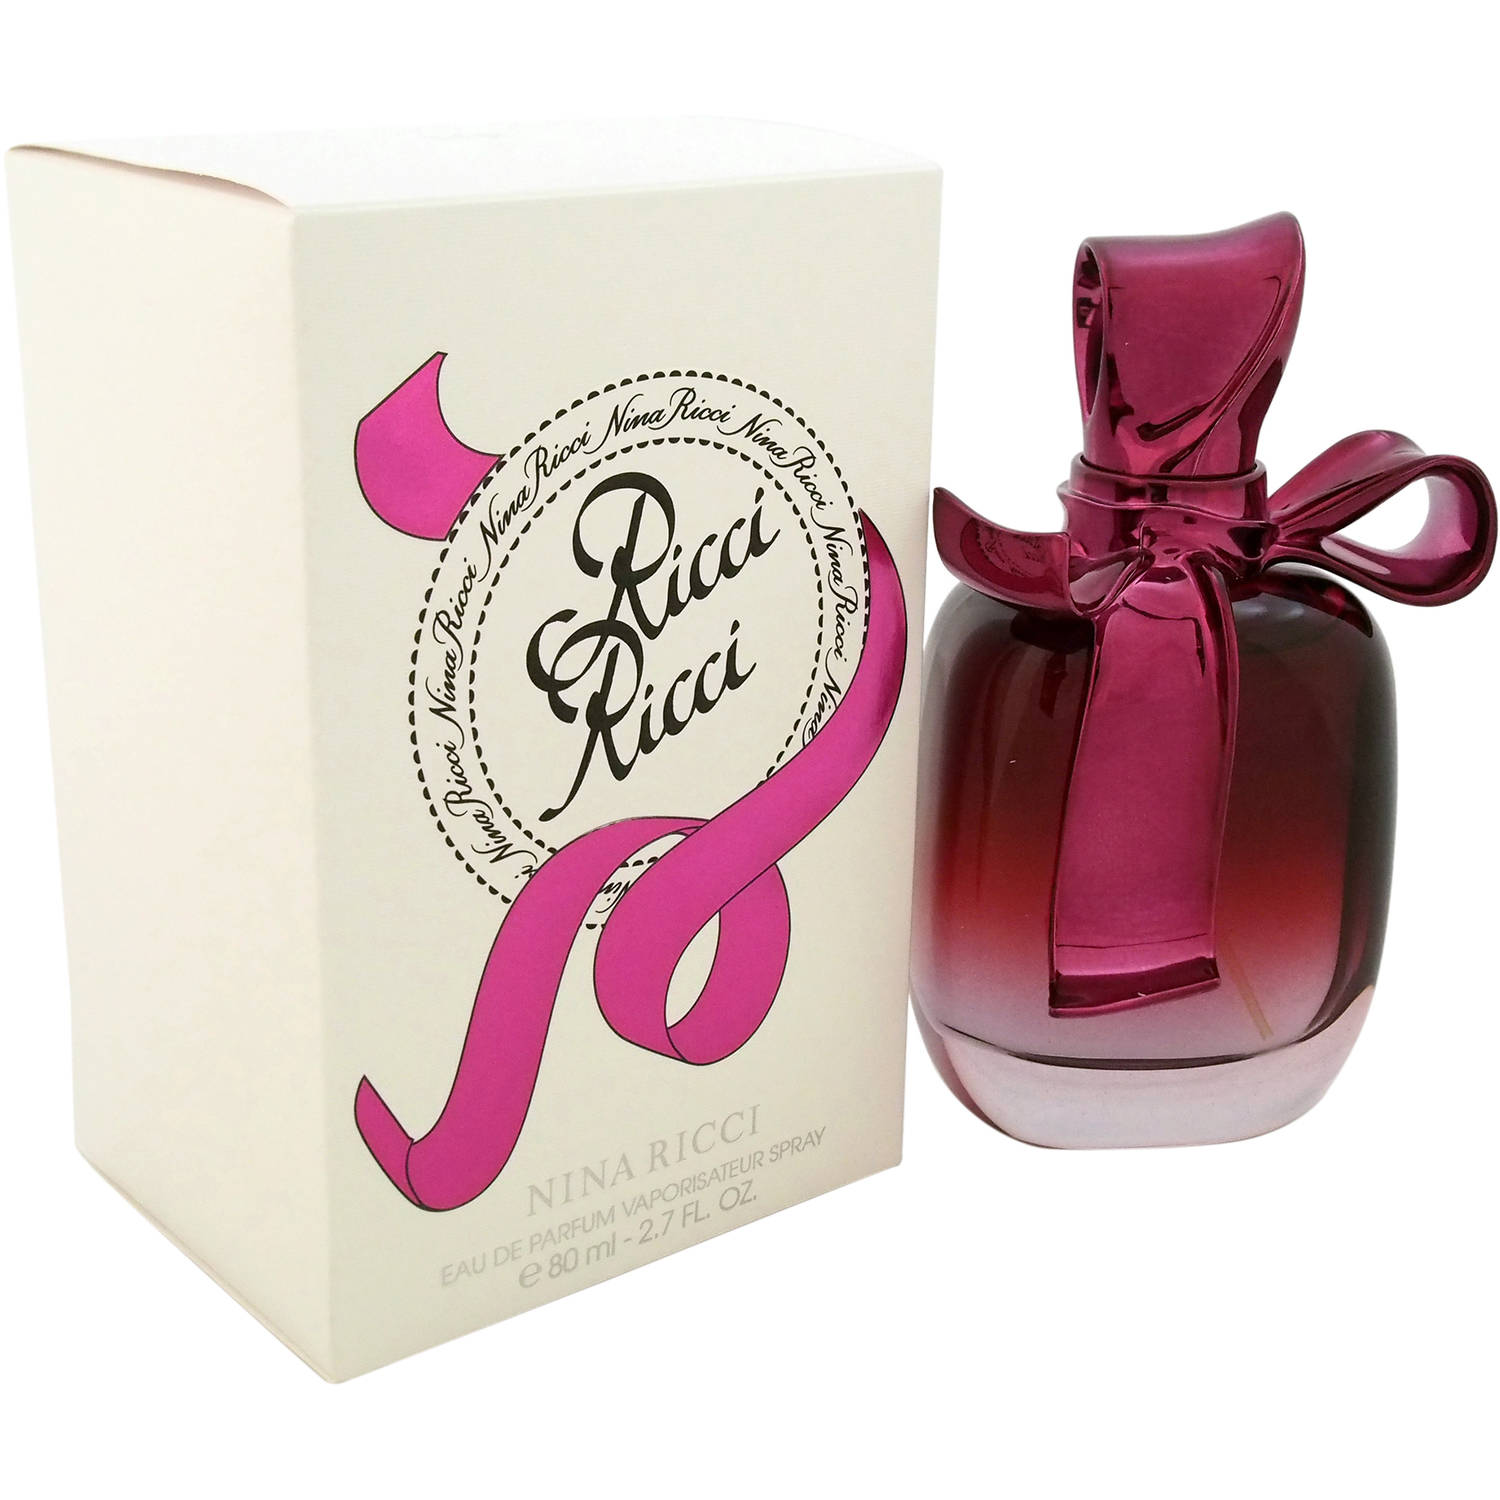 Ricci Ricci by Nina Ricci for Women EDP Spray, 2.7 oz